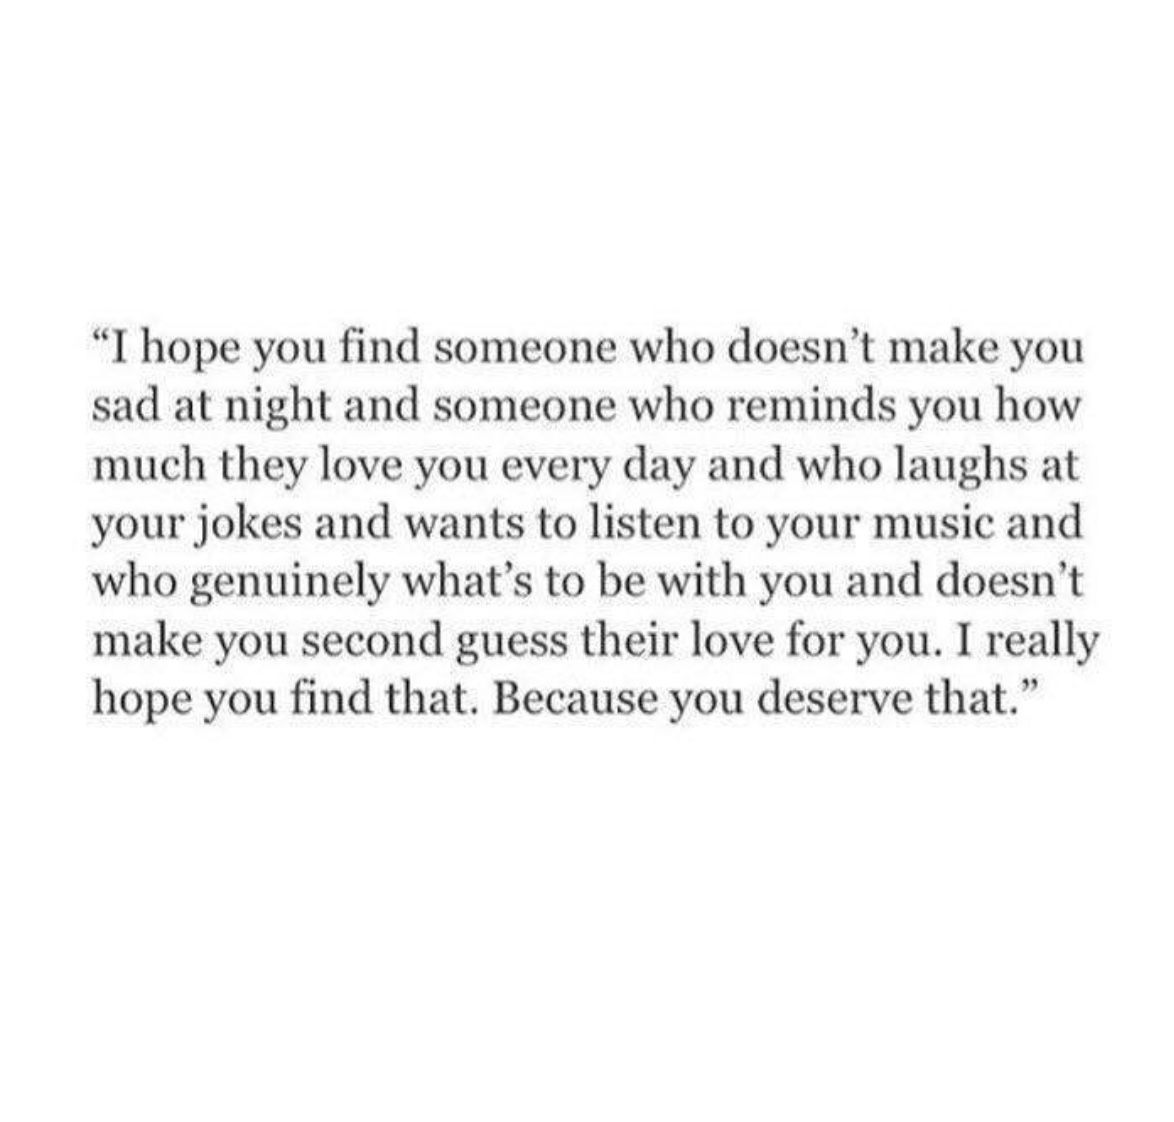 Even though we drifted apart doesn't mean I don't care about